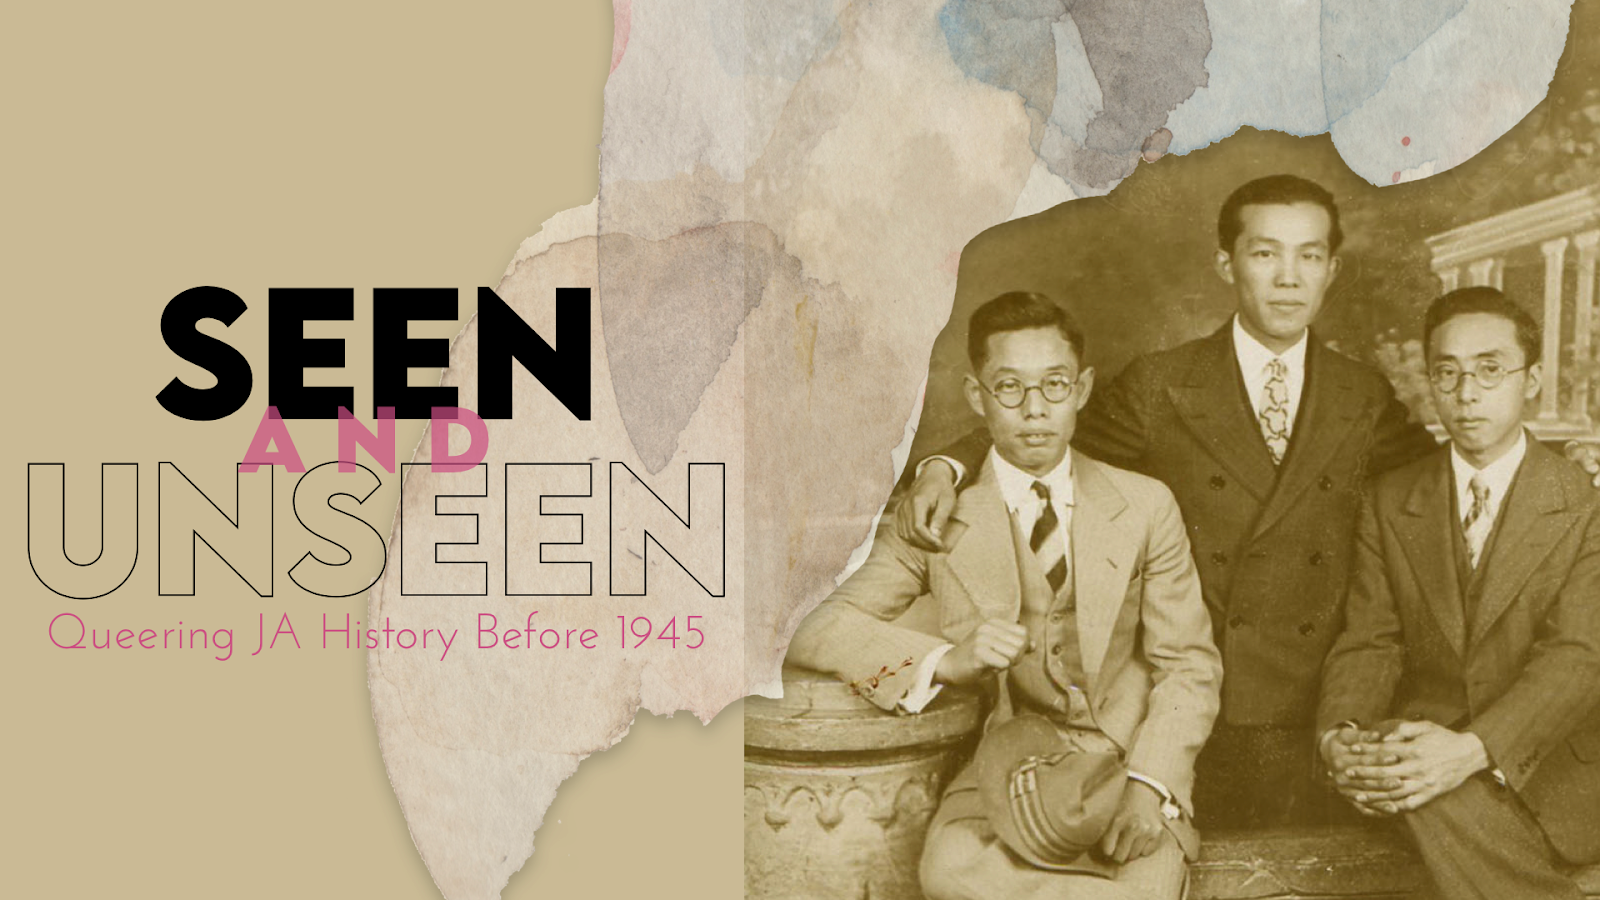 """Sepia tinted photo of three Japanese gay men posing in suits. Text reads """"Seen and Unseen: Queering JA History Before 1945."""""""